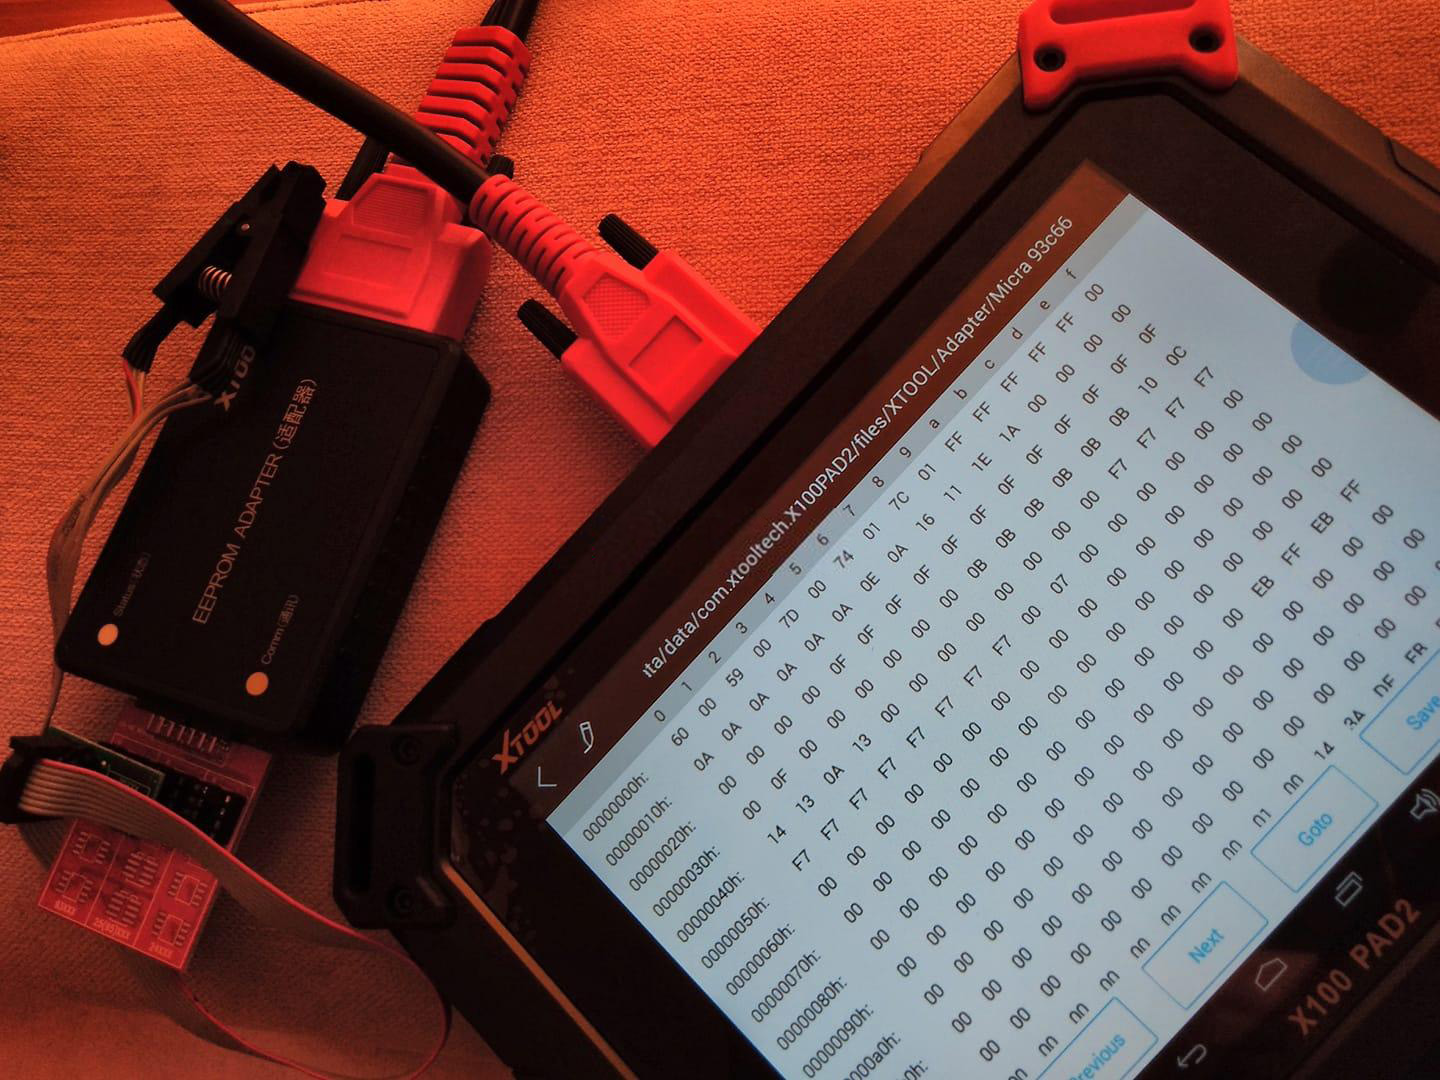 How-to-Read-Write-Eeprom-93c76-by-XTOOL-X100-PAD2-4